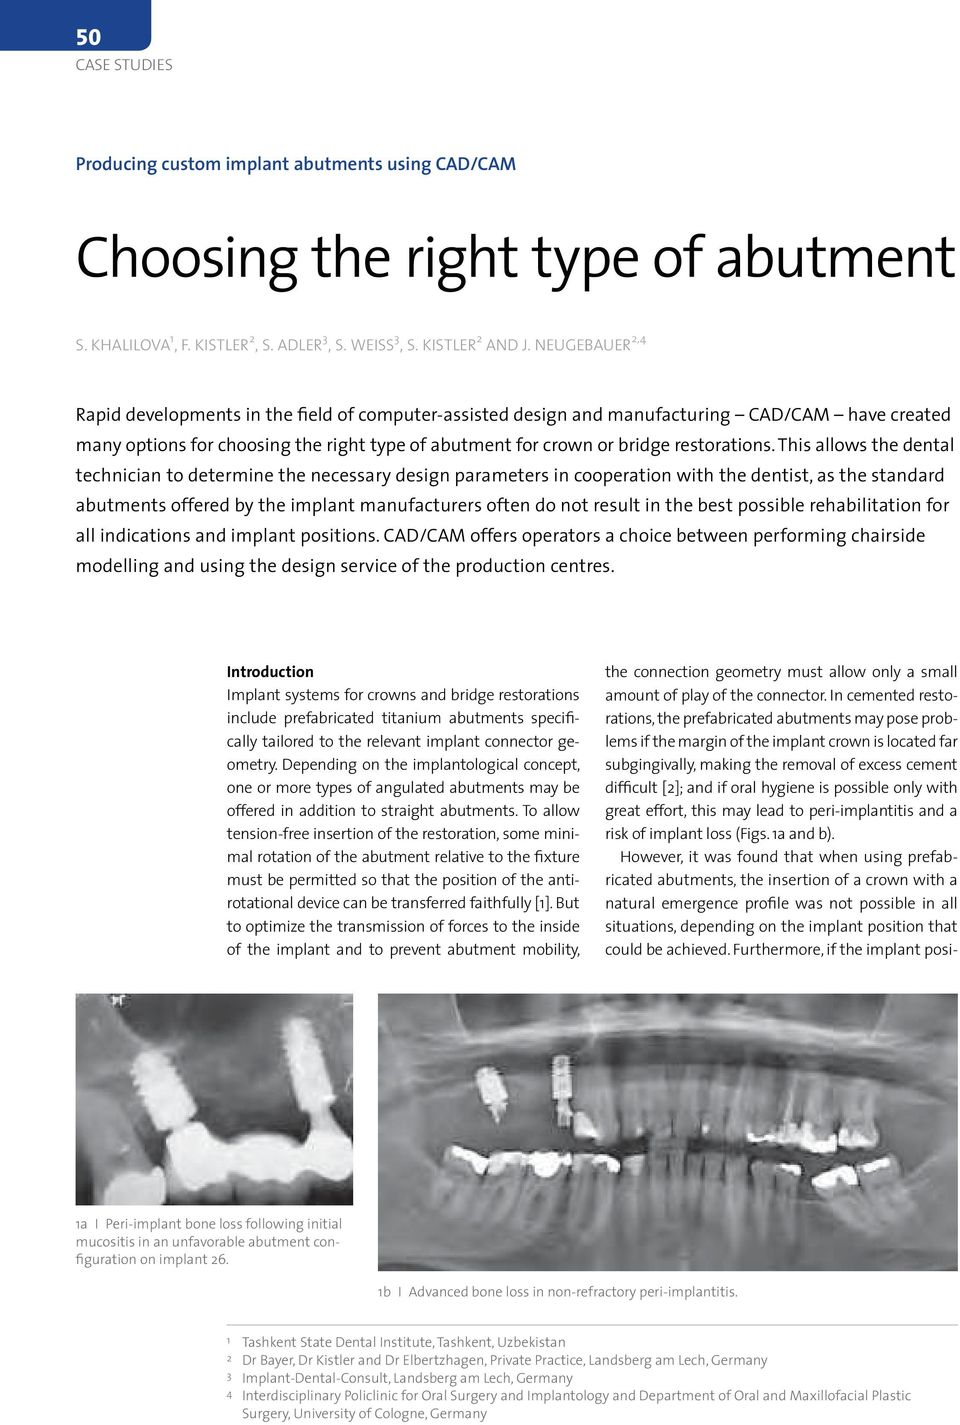 This allows the dental technician to determine the necessary design parameters in cooperation with the dentist, as the standard abutments offered by the implant manufacturers often do not result in